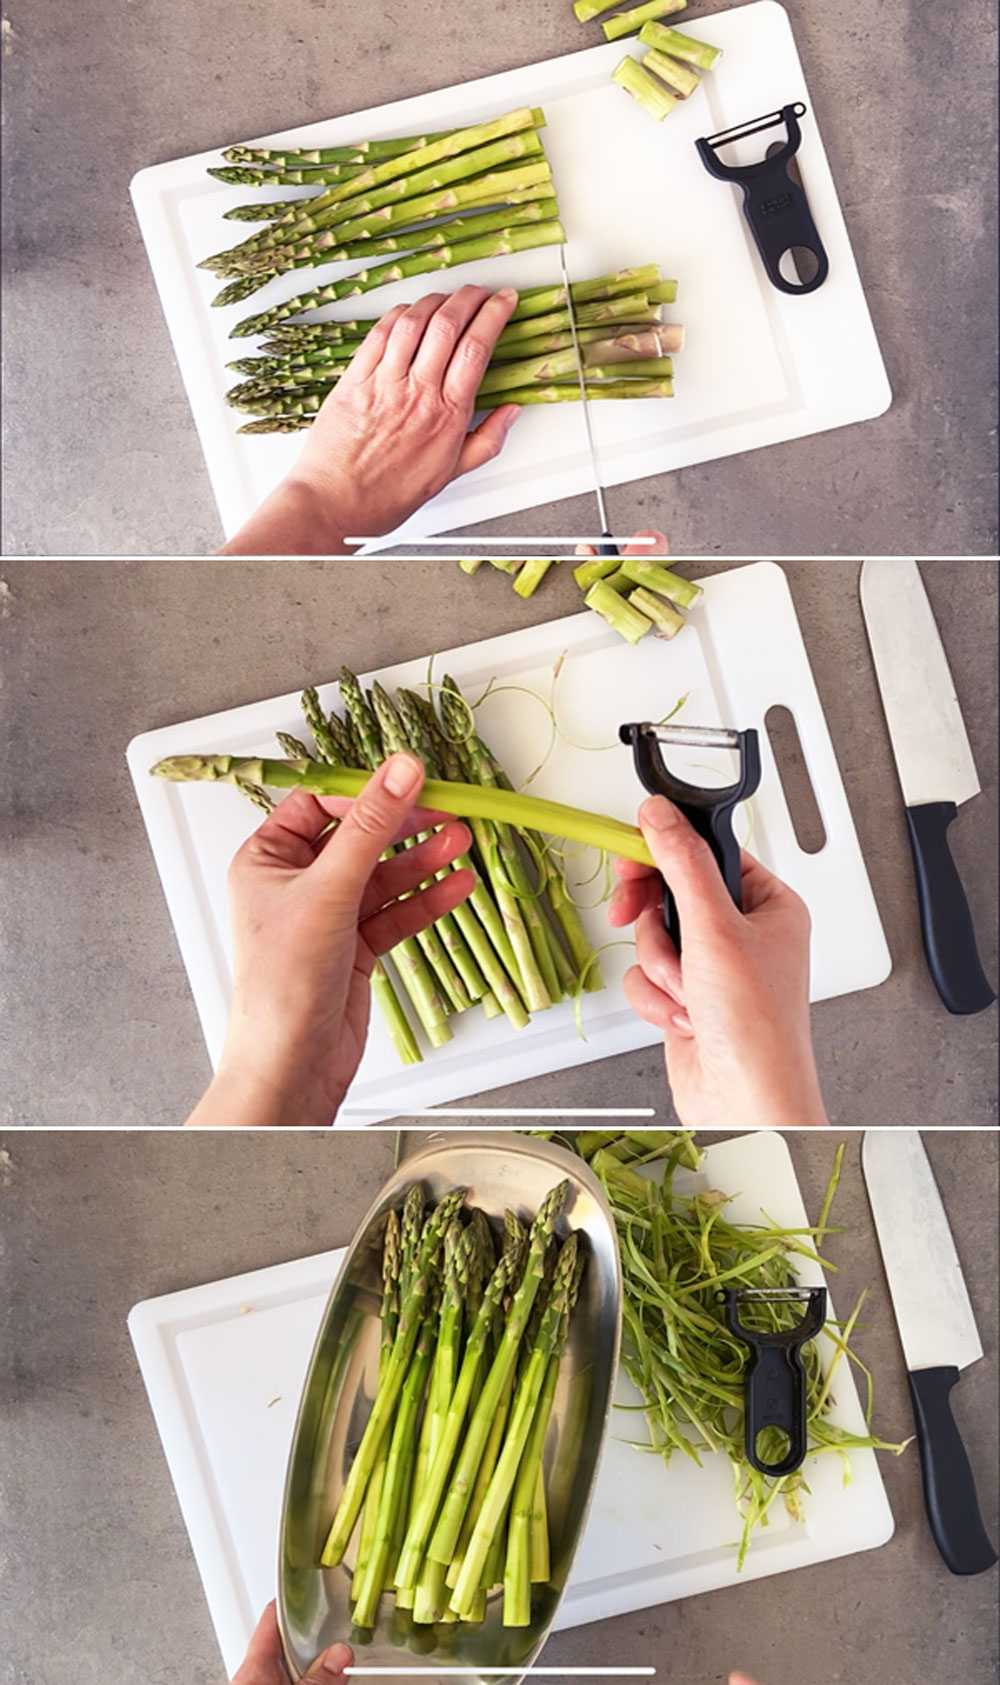 Step by step images showing how to prepare asparagus